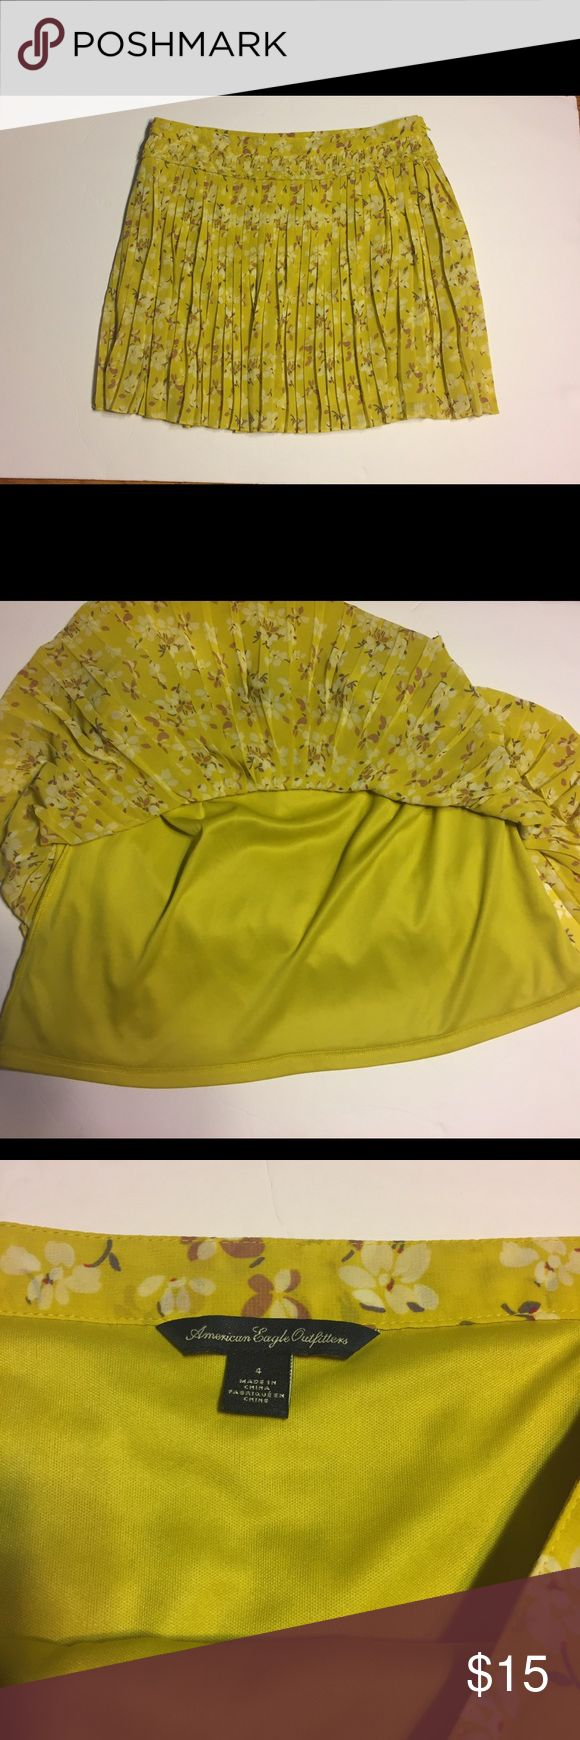 American Eagle yellow floral pleated skirt SZ4 Cute little American Eagle Outfitters pleated lined yellow floral mini skirt SZ:4, waist:14, length:14 1/2 Preowned no rips stains or holes. American Eagle Outfitters Skirts Mini